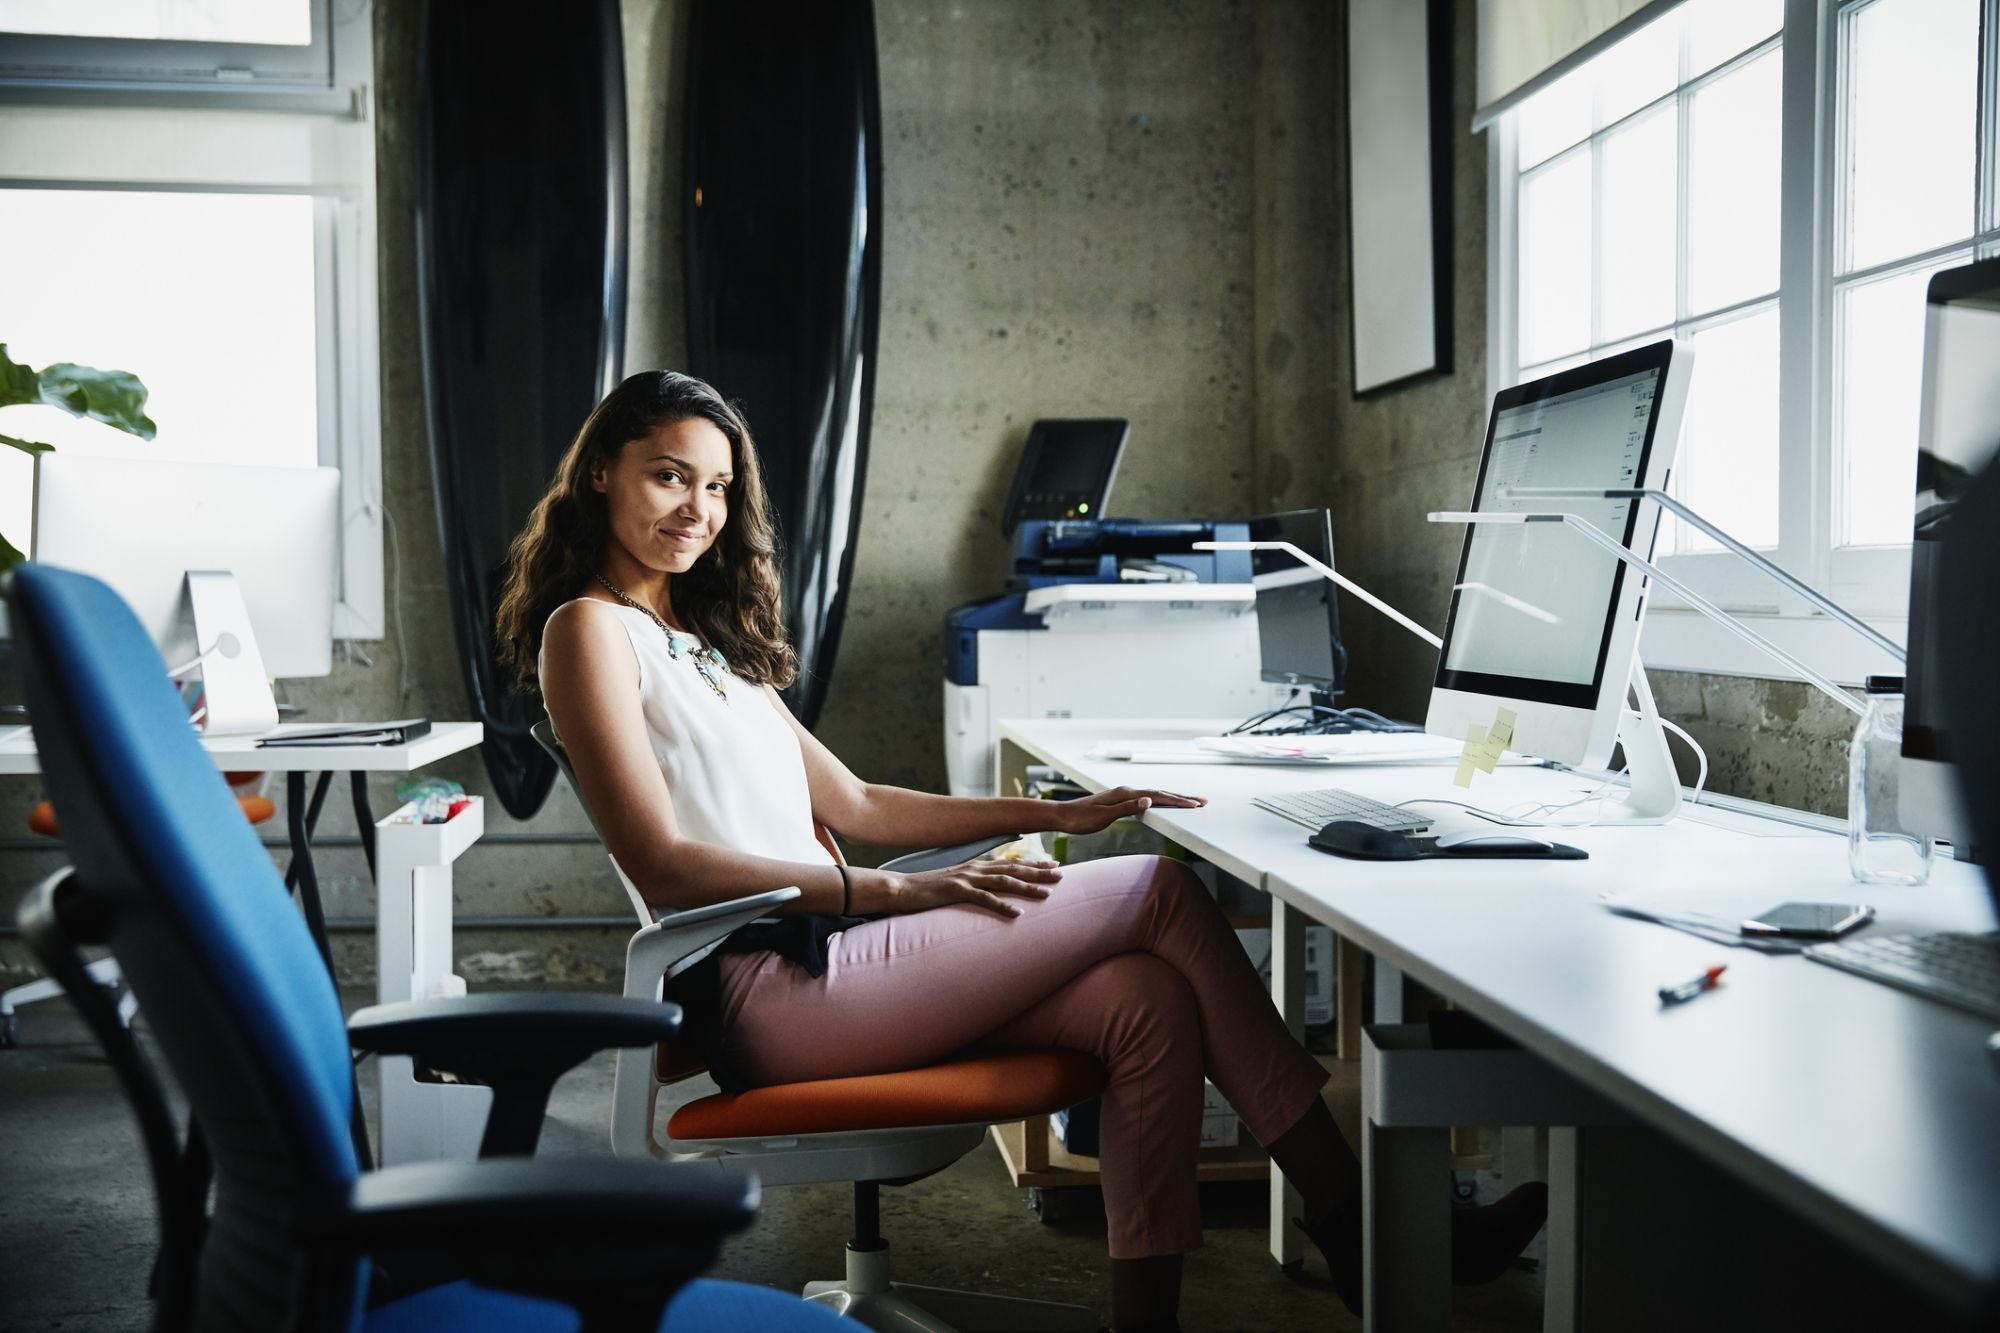 The 7 Strengths and Habits That Successful People Possess